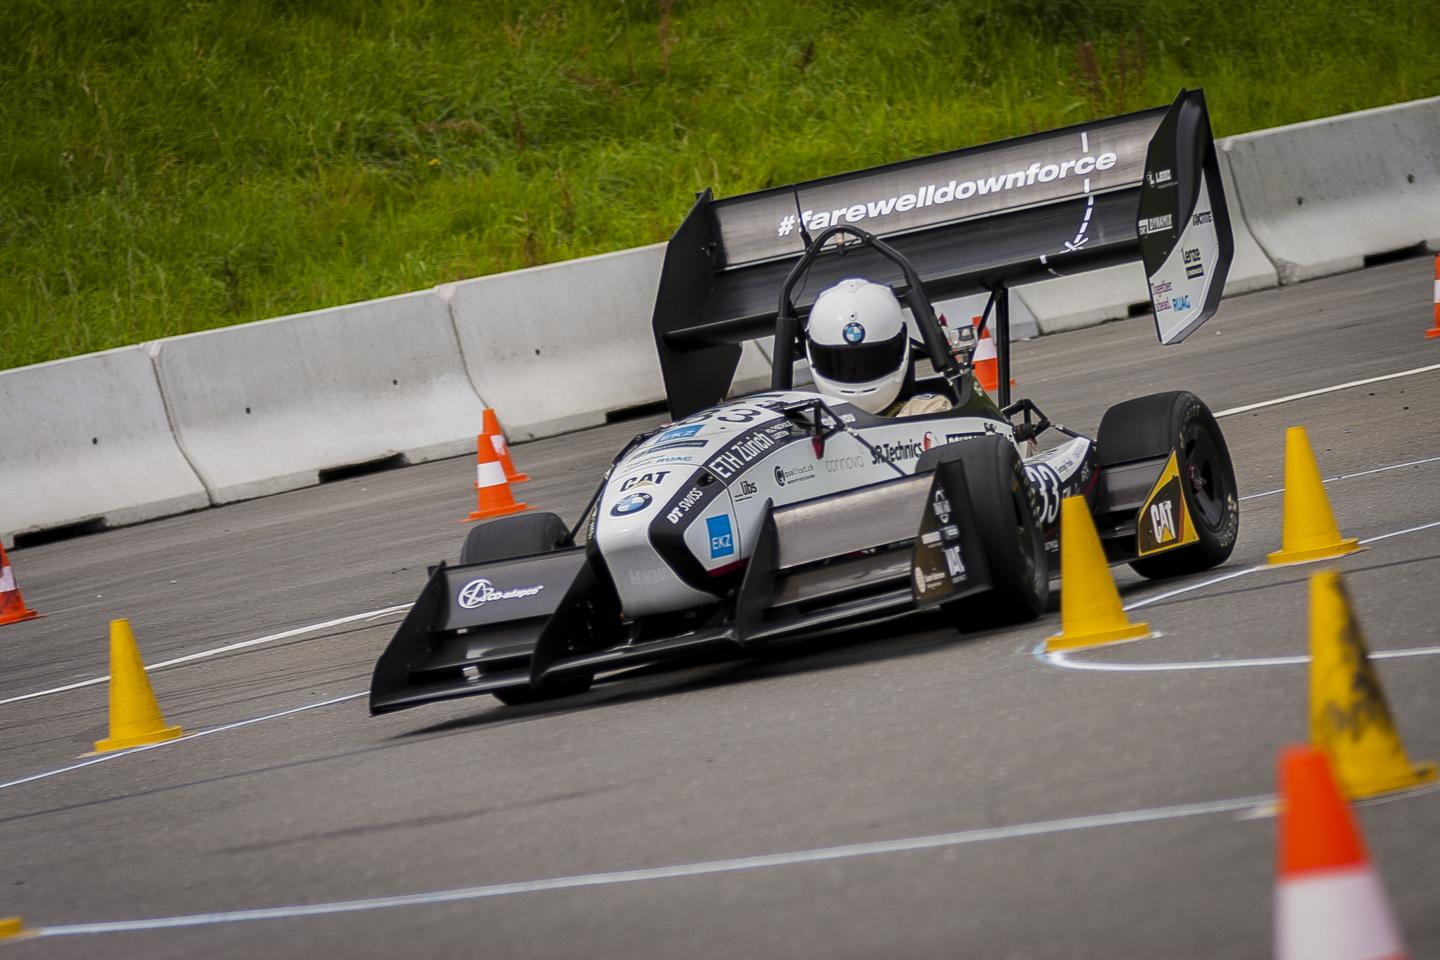 The vehicle was developed and built in less than 12 months by a team of students at ETH Zurich and Lucerne University (Photo: AMZ Racing)